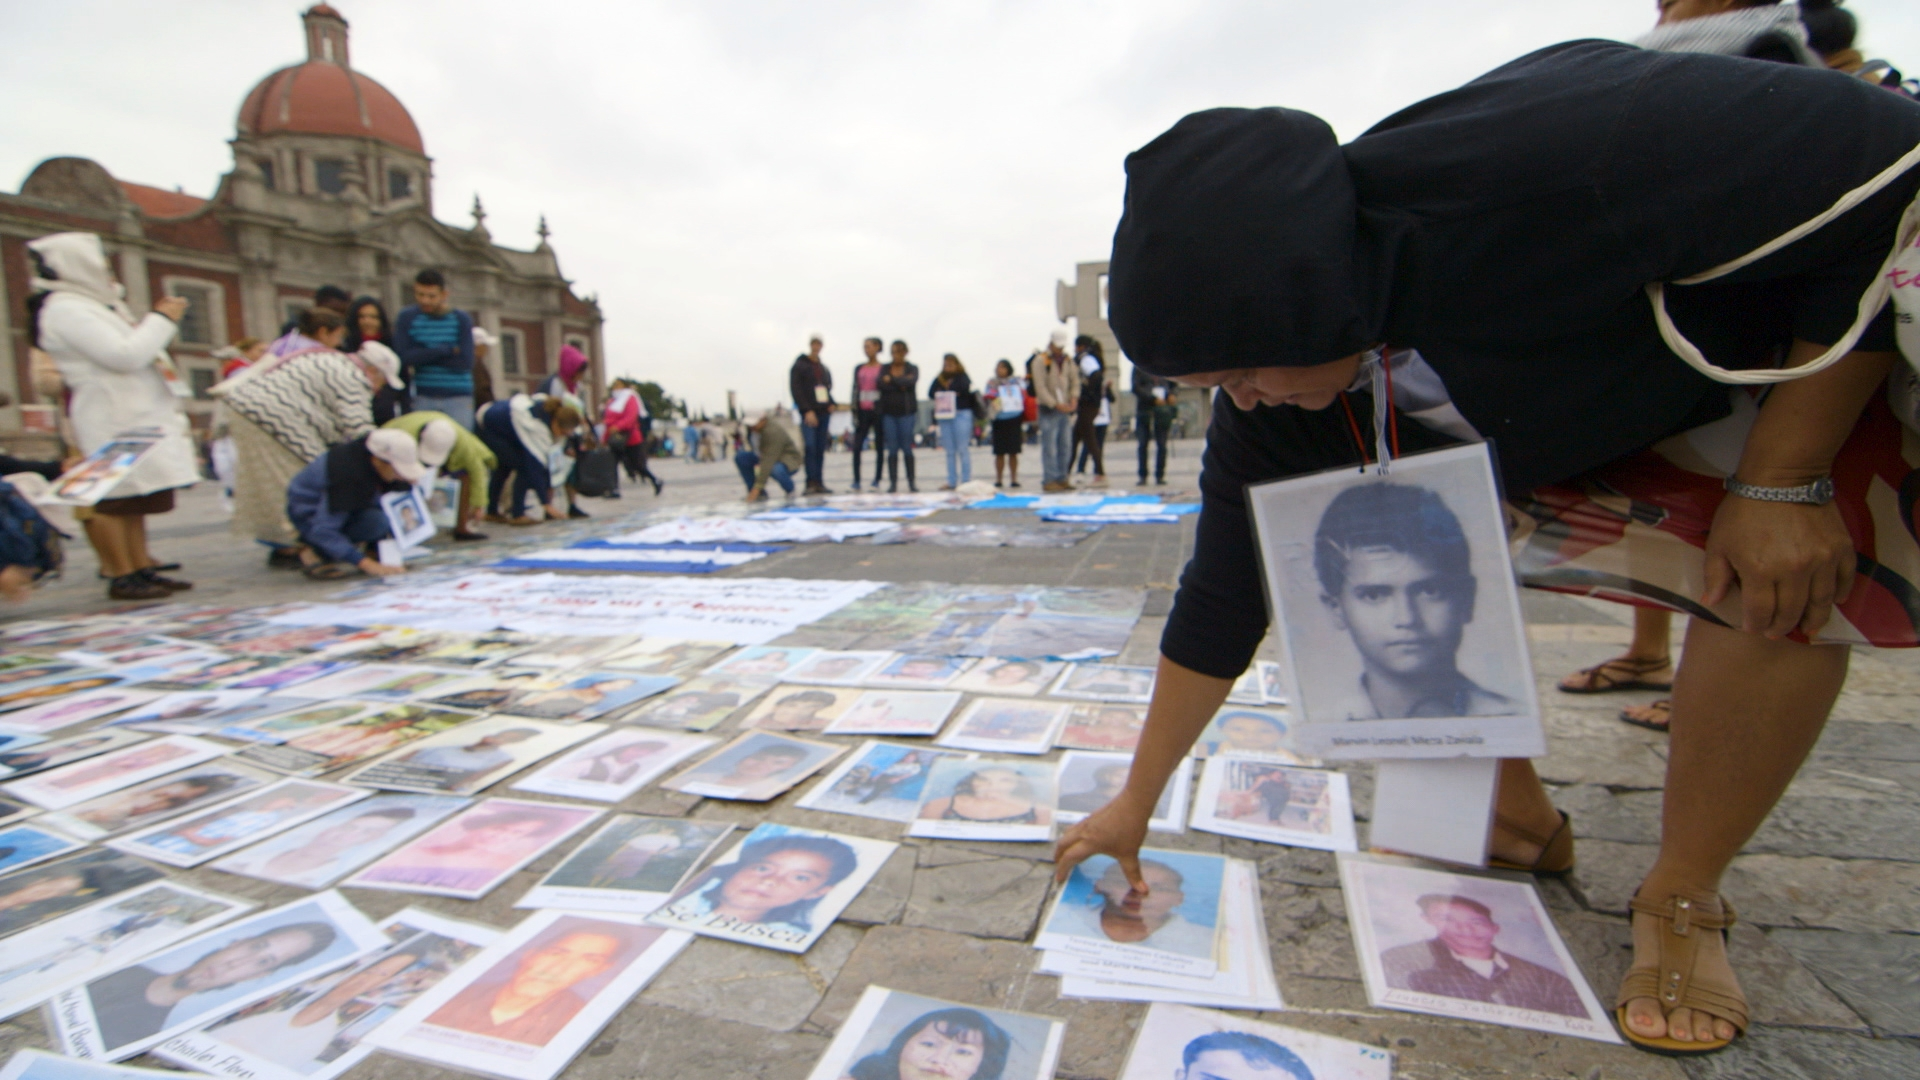 Amnesty International estimates that 70,000 have gone missing while trying to reach the US.